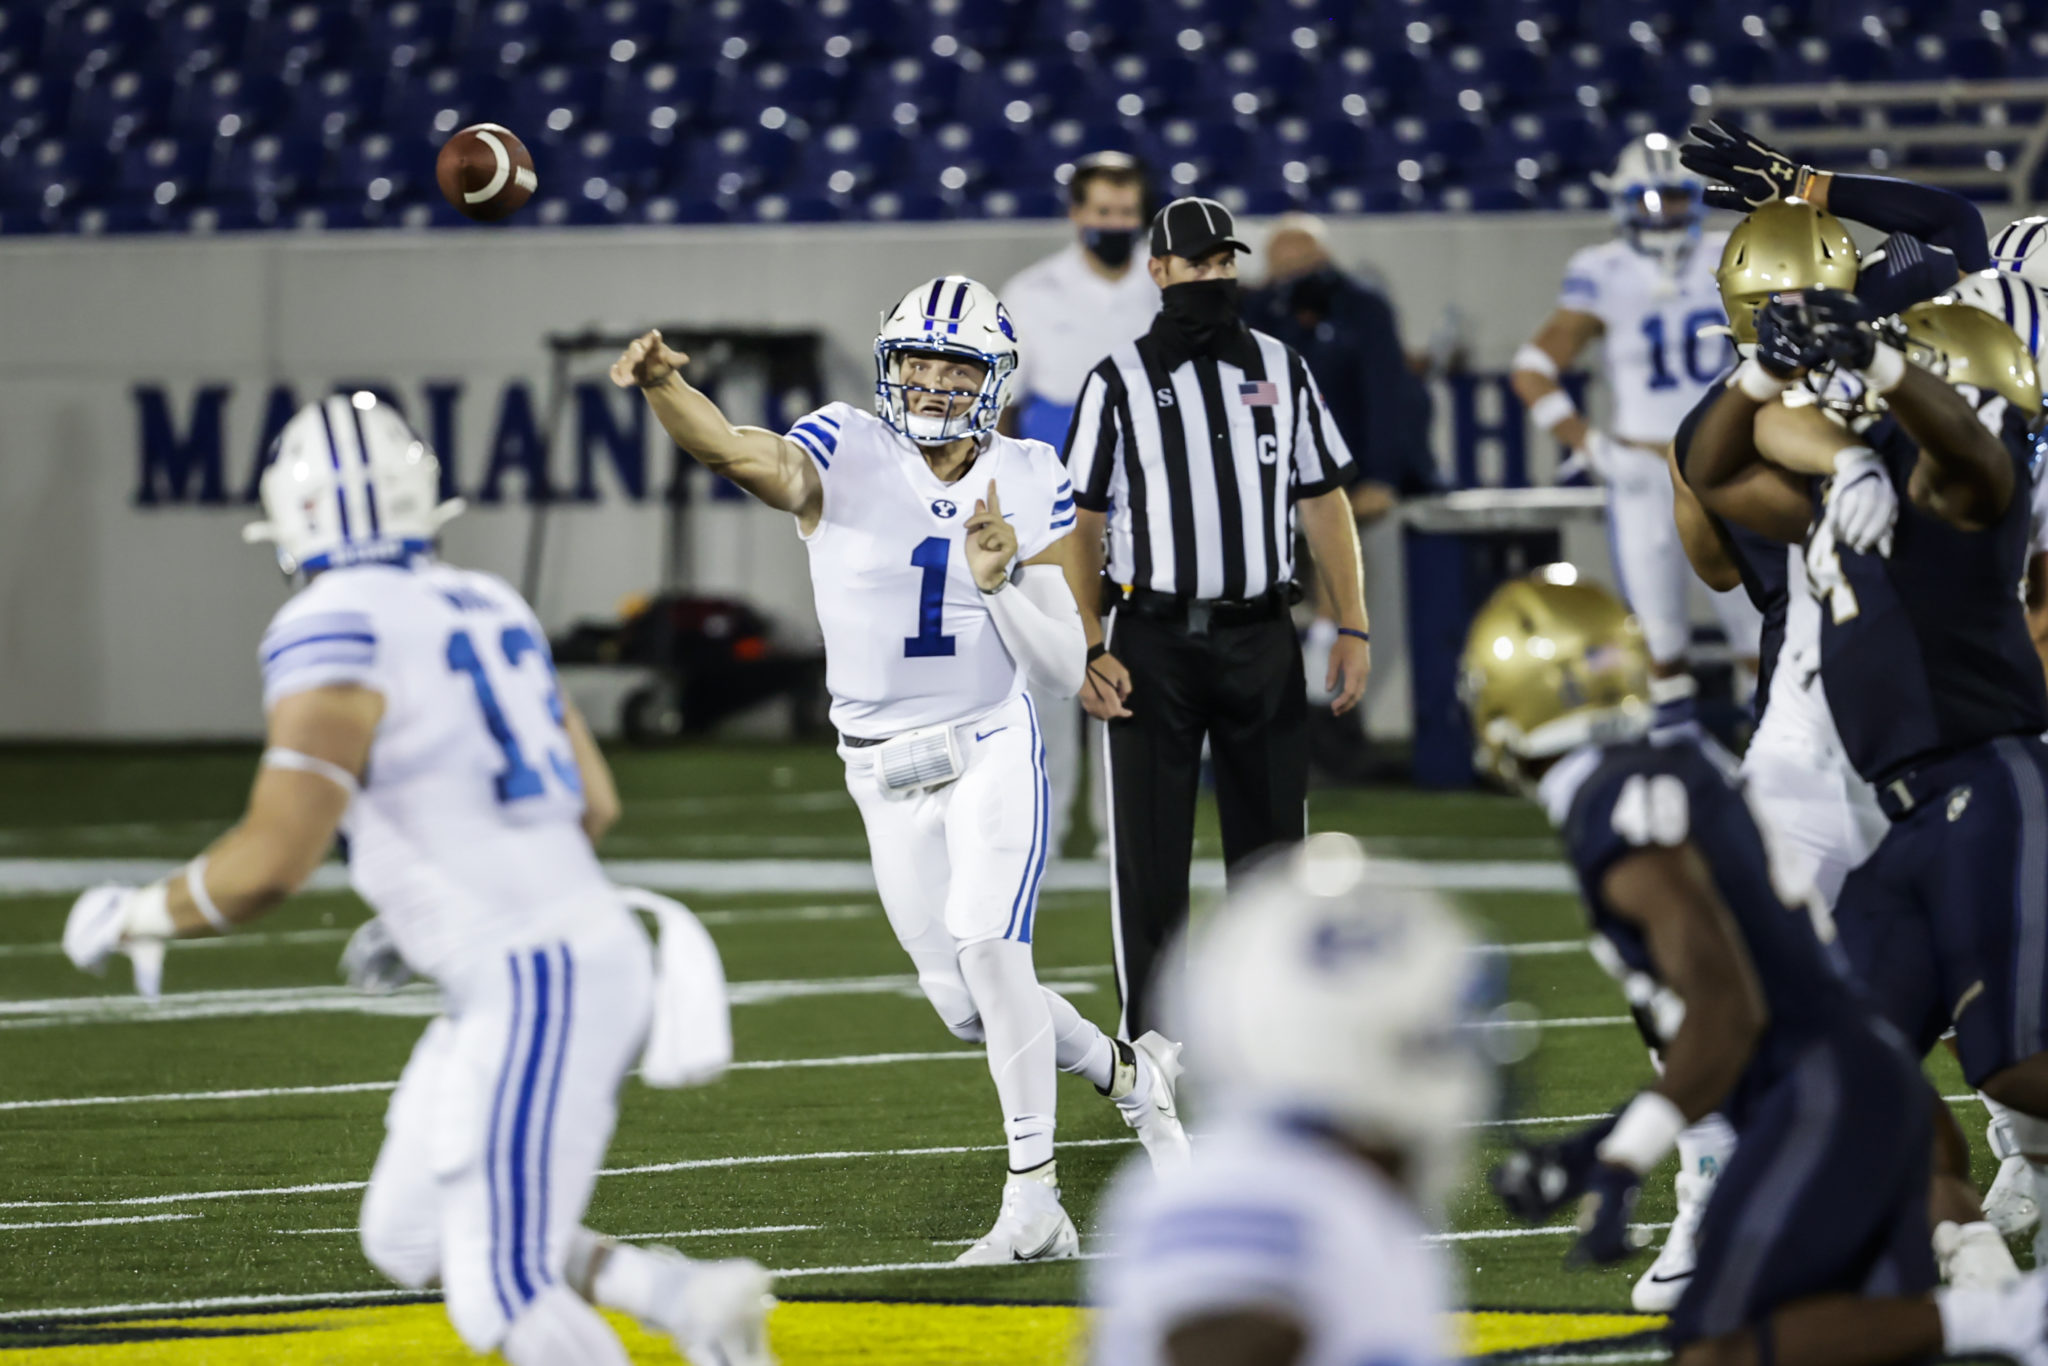 BYU Football's Zach Wilson named Manning Award Quarterback of the Week